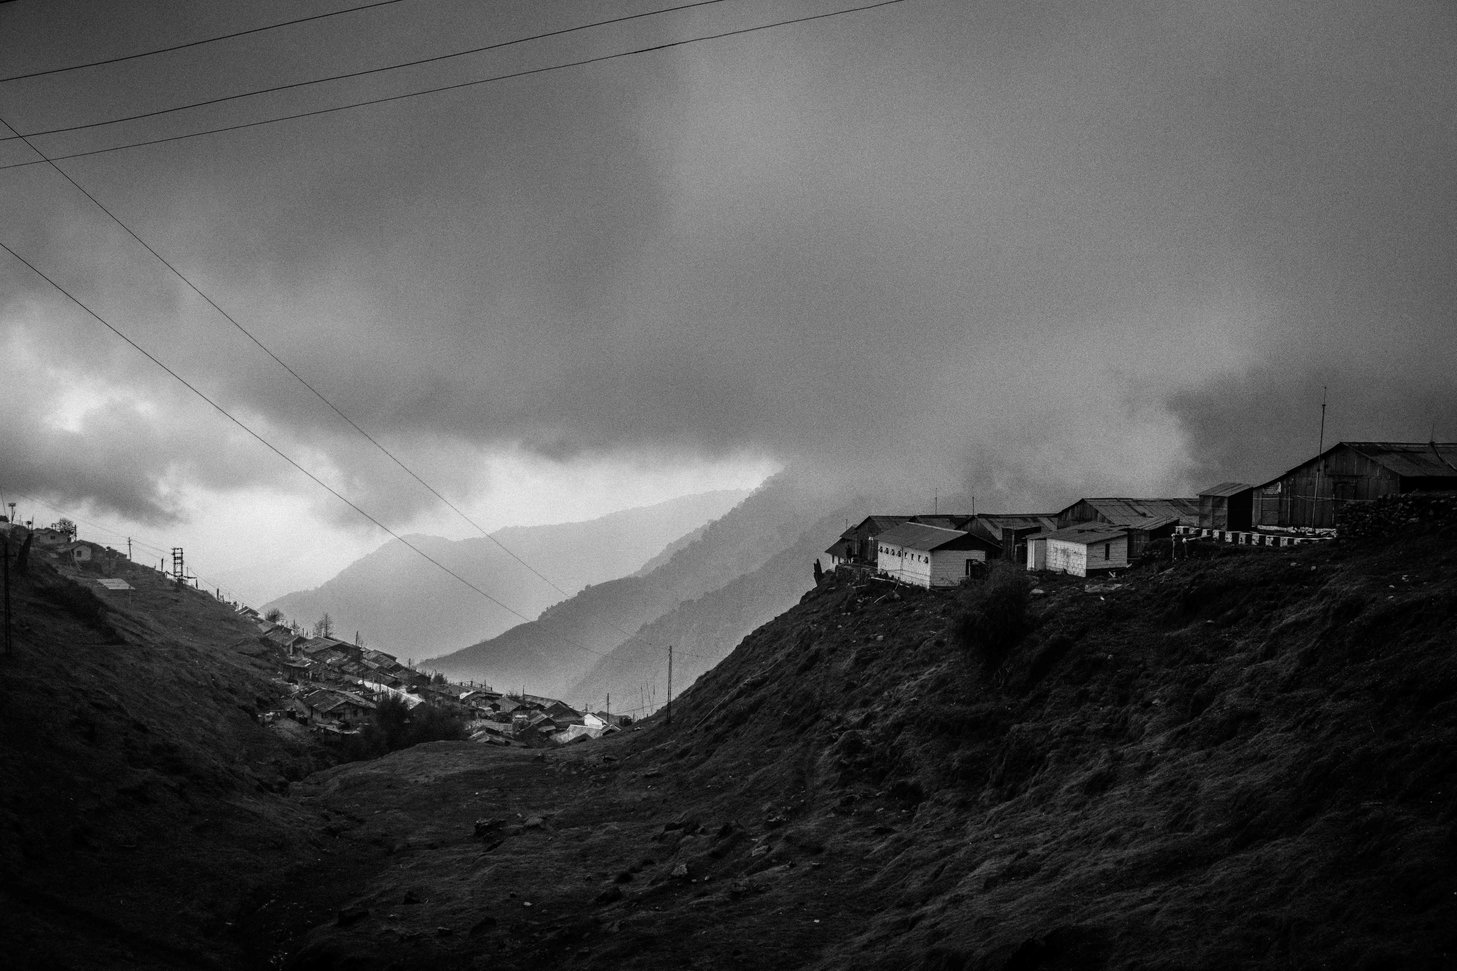 Before thunderstorm clouds are gathering in valley. Taken at Zuluk, East Sikkim.